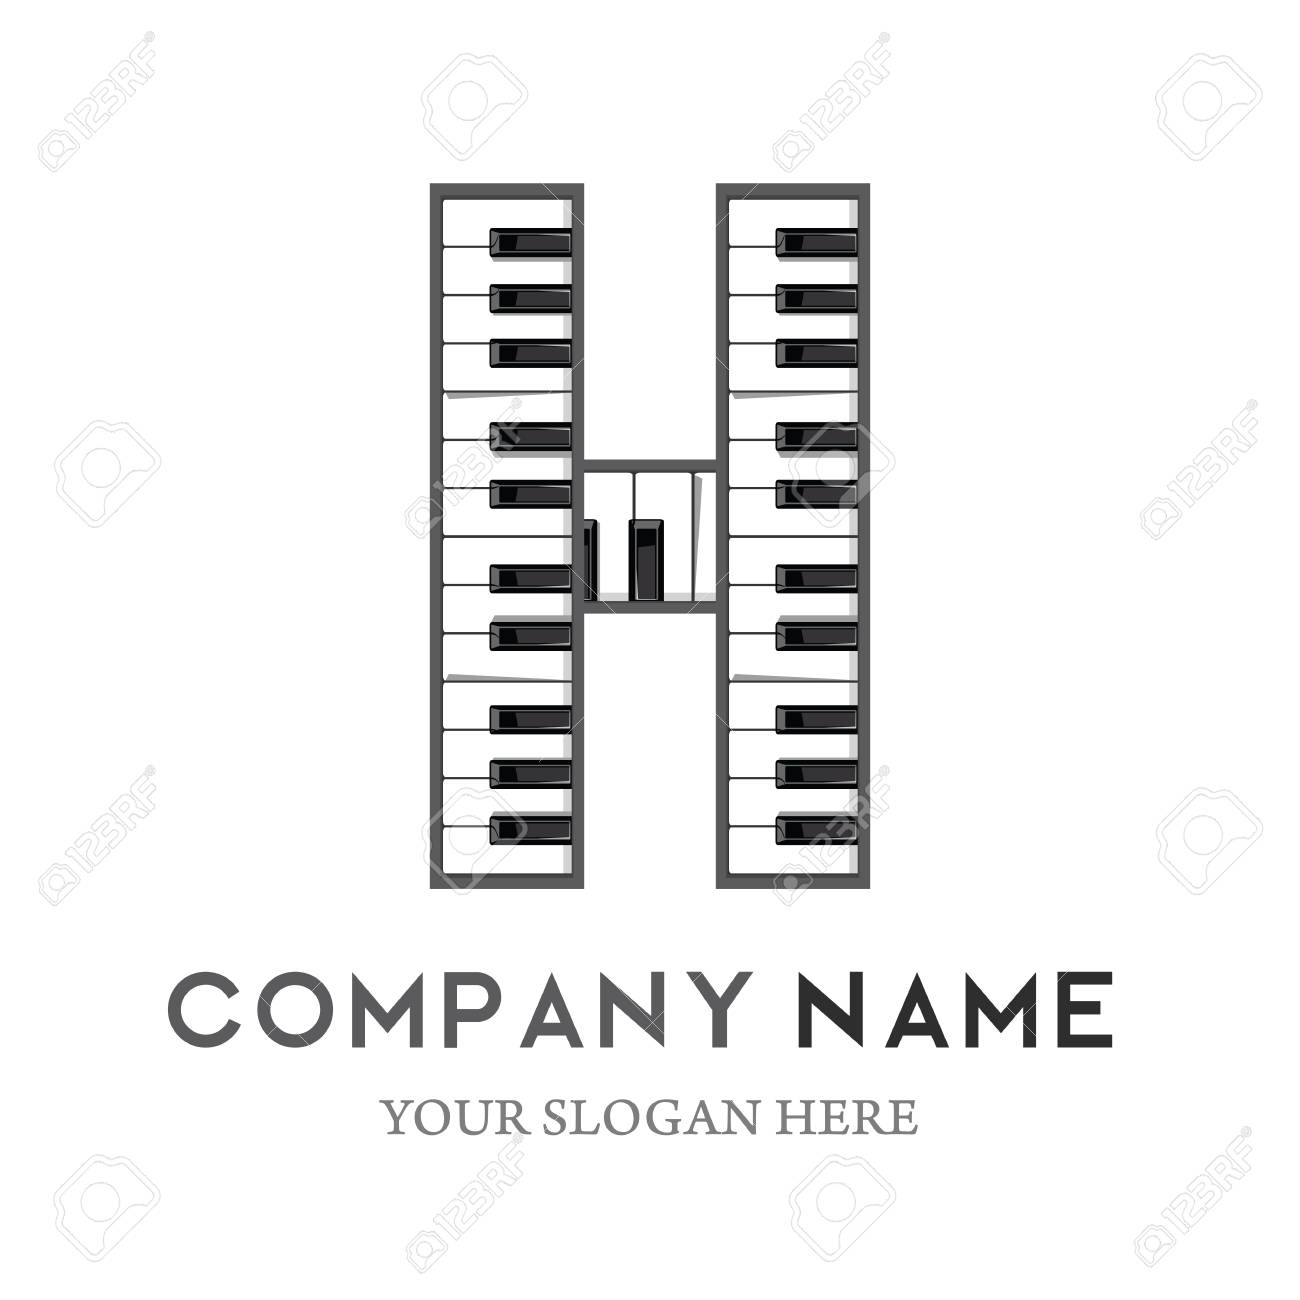 h letter logo design piano keyboard logo music icon design template